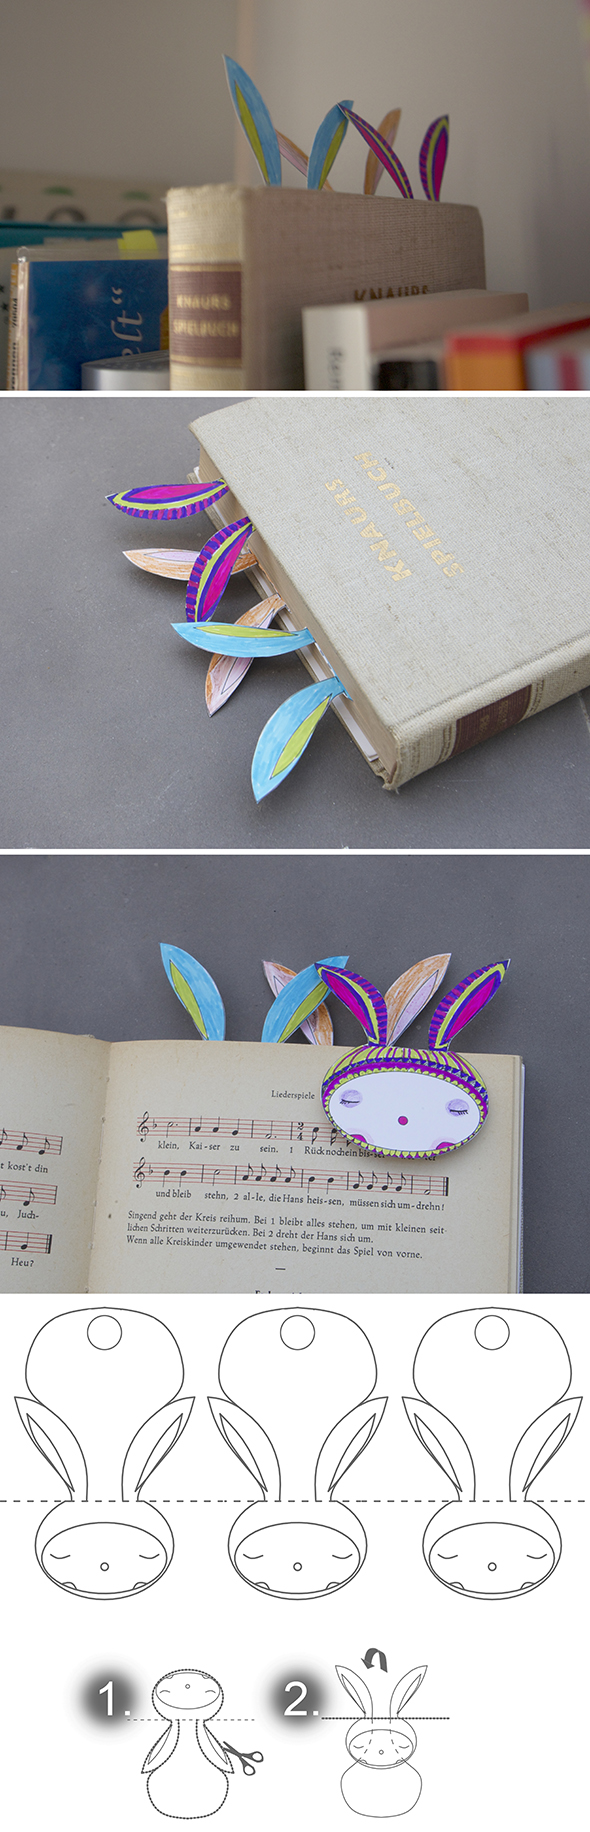 hasen lesezeichen bunny rabbit conejo bookmark marca paginas free printable download gratis imprimir drucken copia